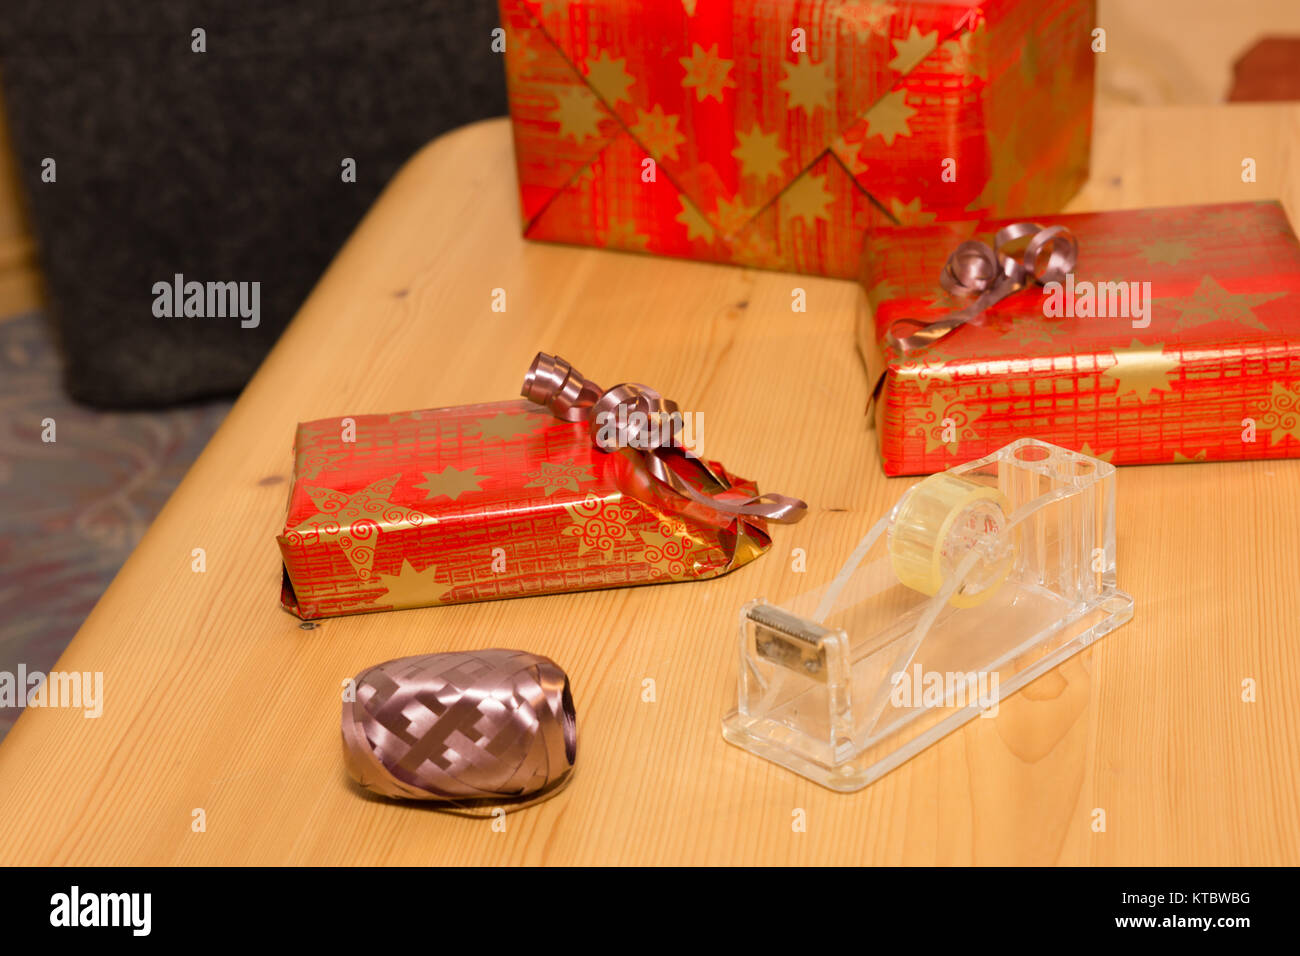 Gag Gifts Stock Photos & Gag Gifts Stock Images - Alamy